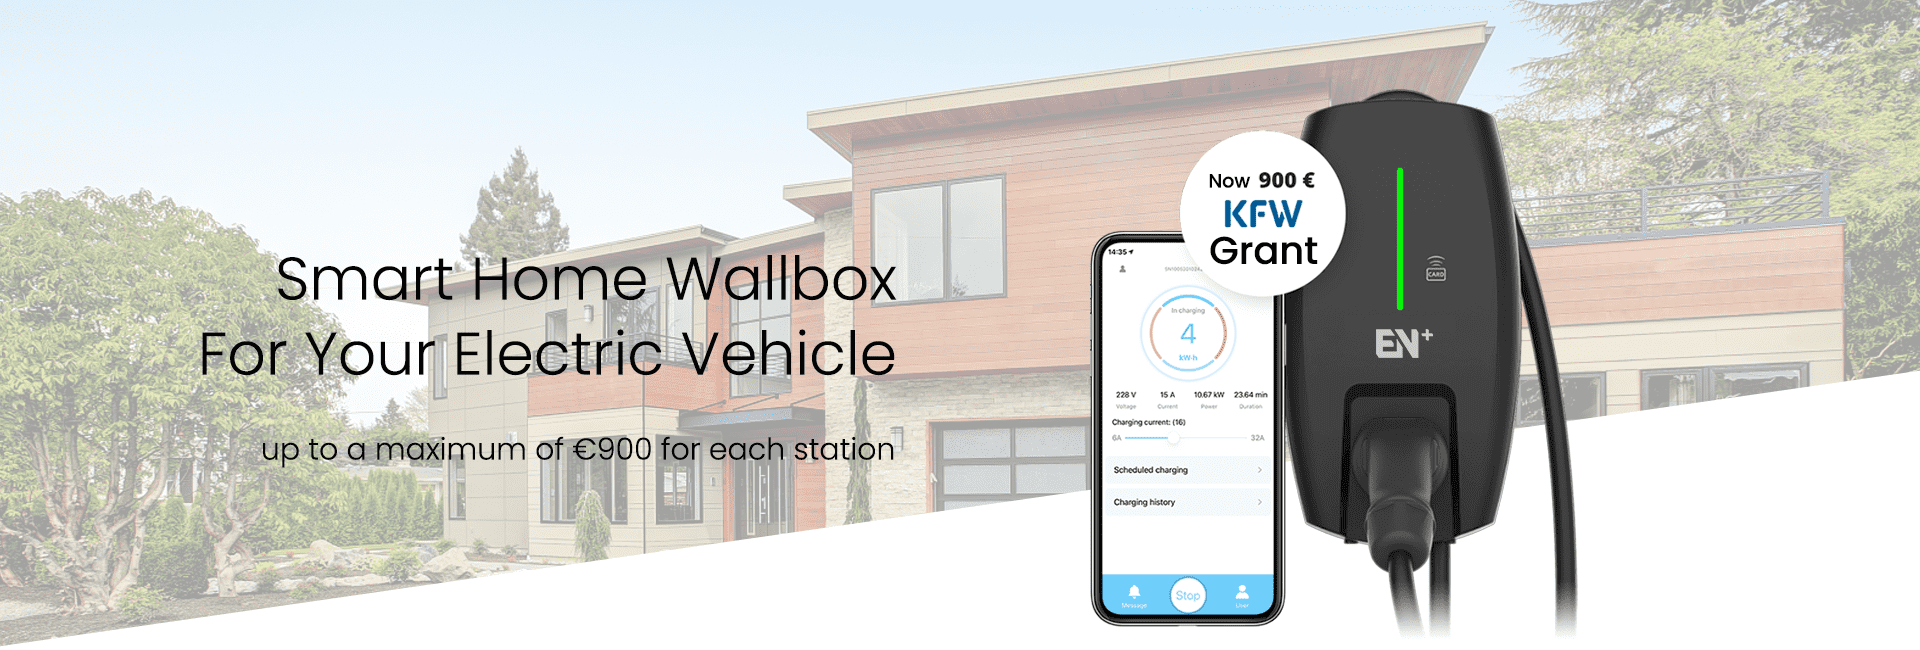 smart home series wallbox